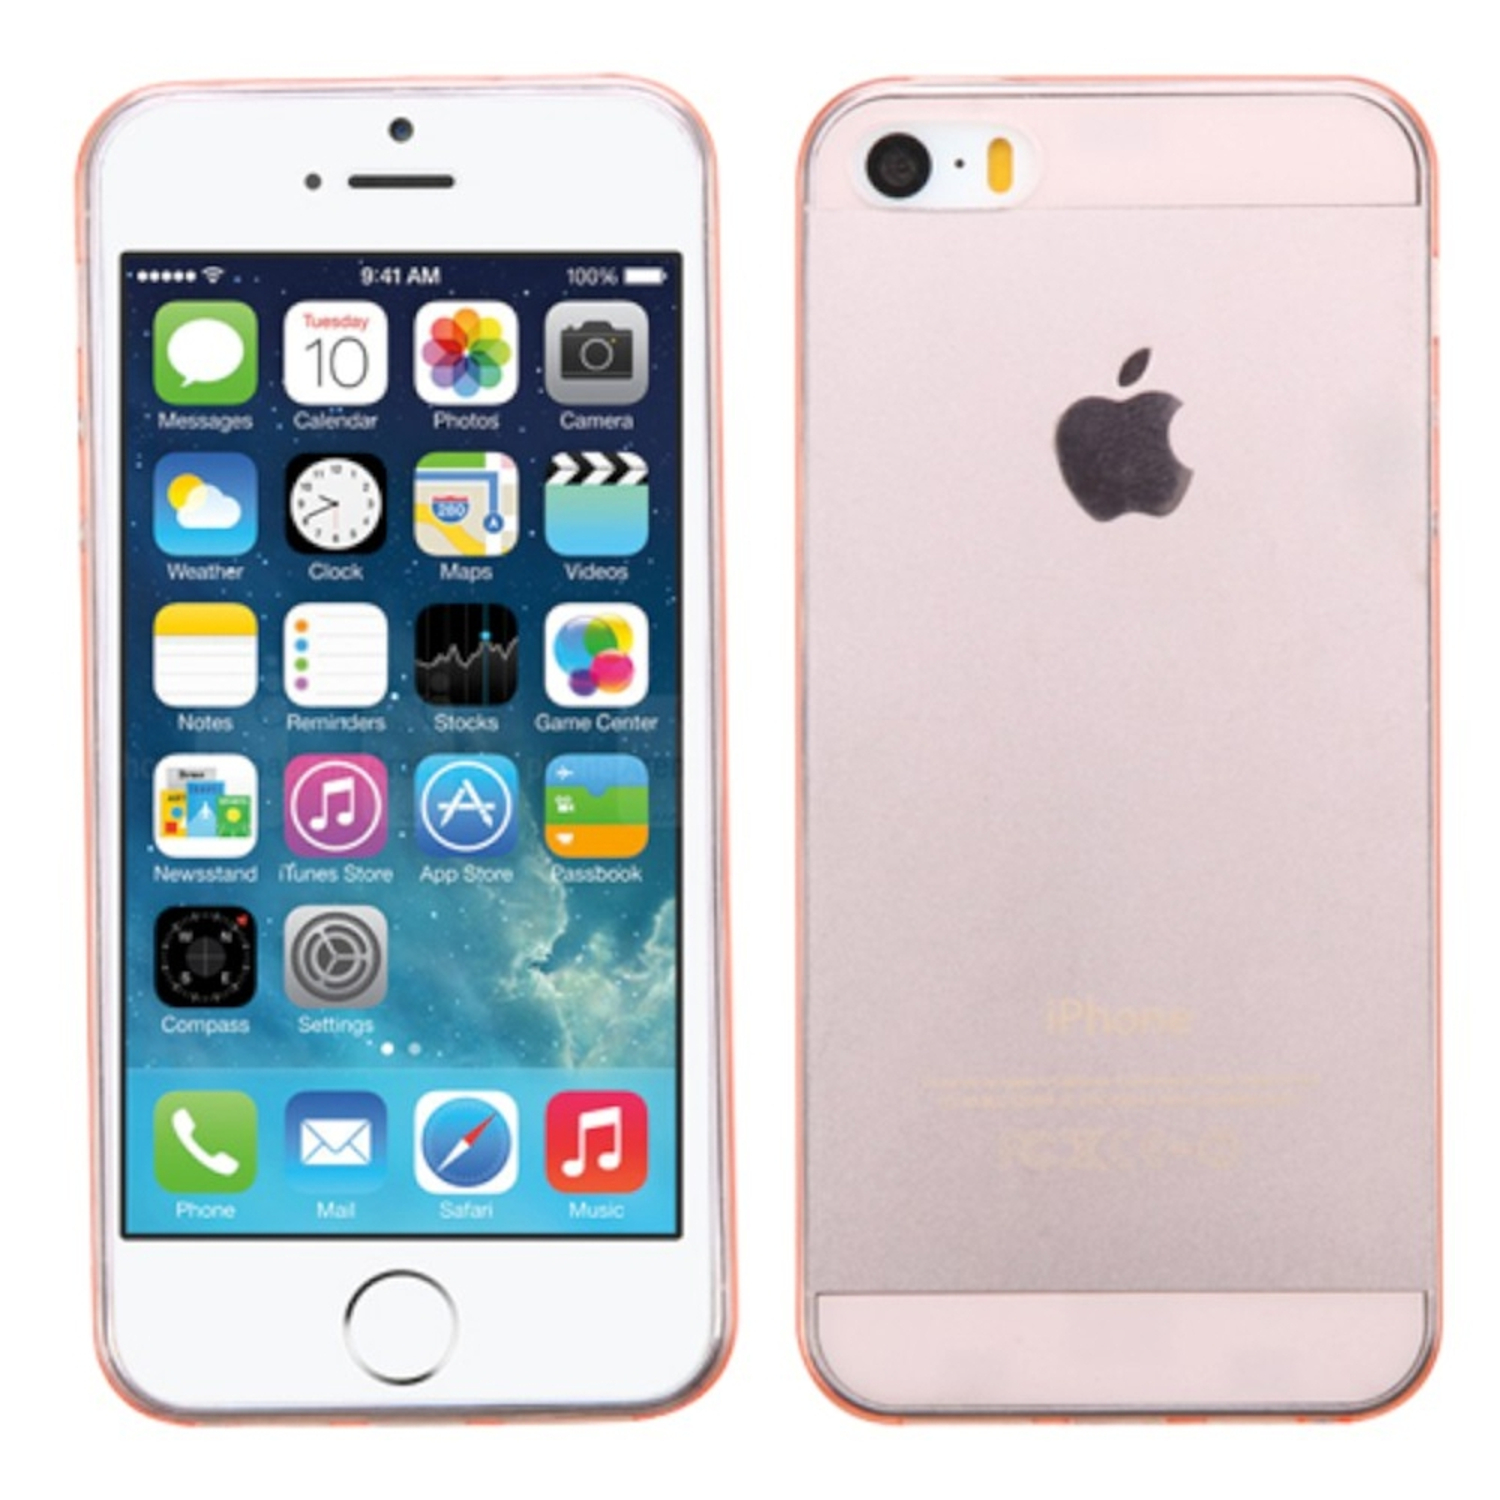 Insten Transparent Rose Gold Rubber Tpu Skin Cover Case For Iphone Se 128gb Rosegold 5s 5